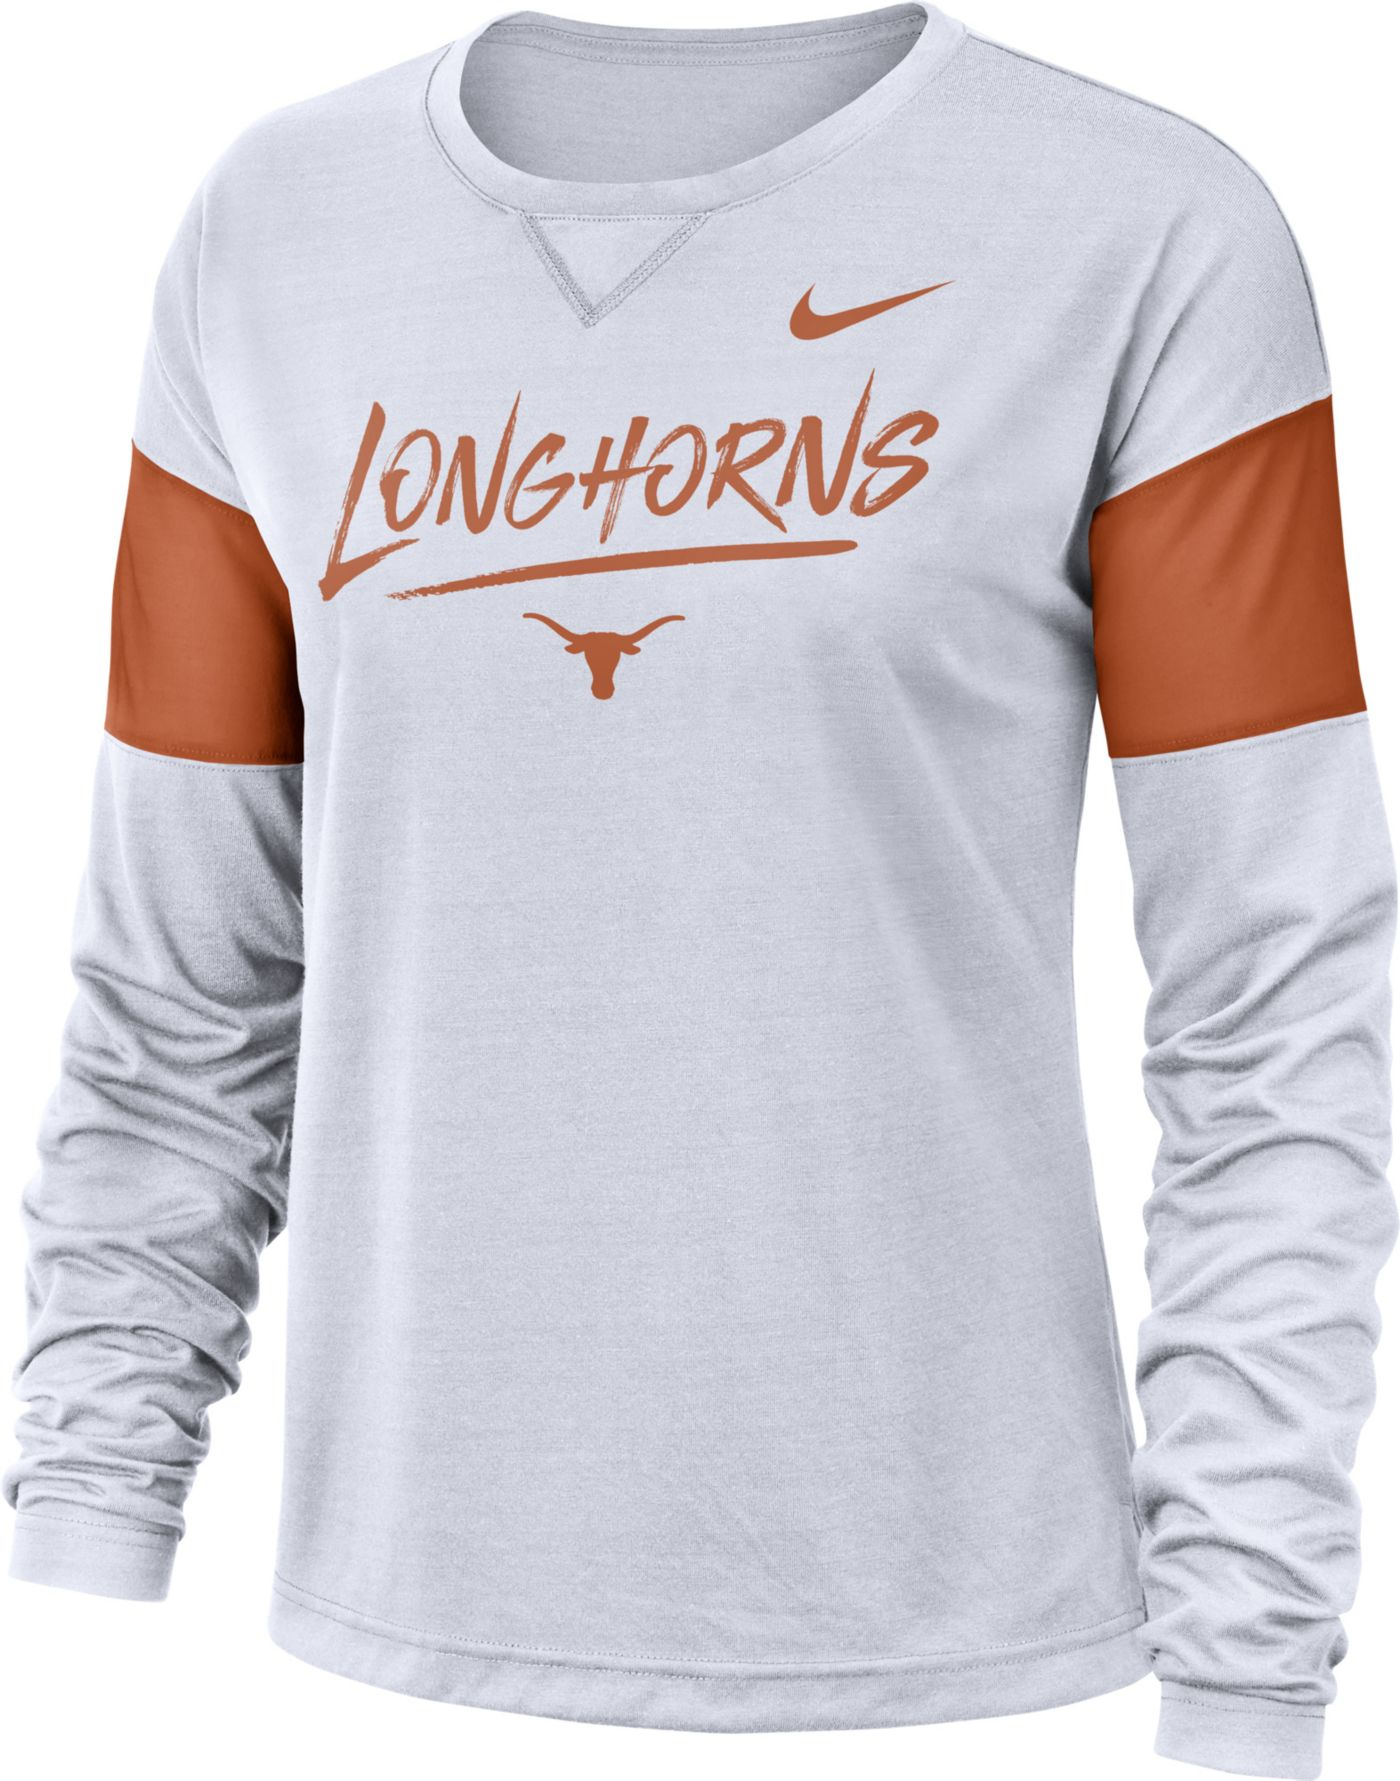 Nike Women's Texas Longhorns Dri-FIT Breathe Long Sleeve White T-Shirt